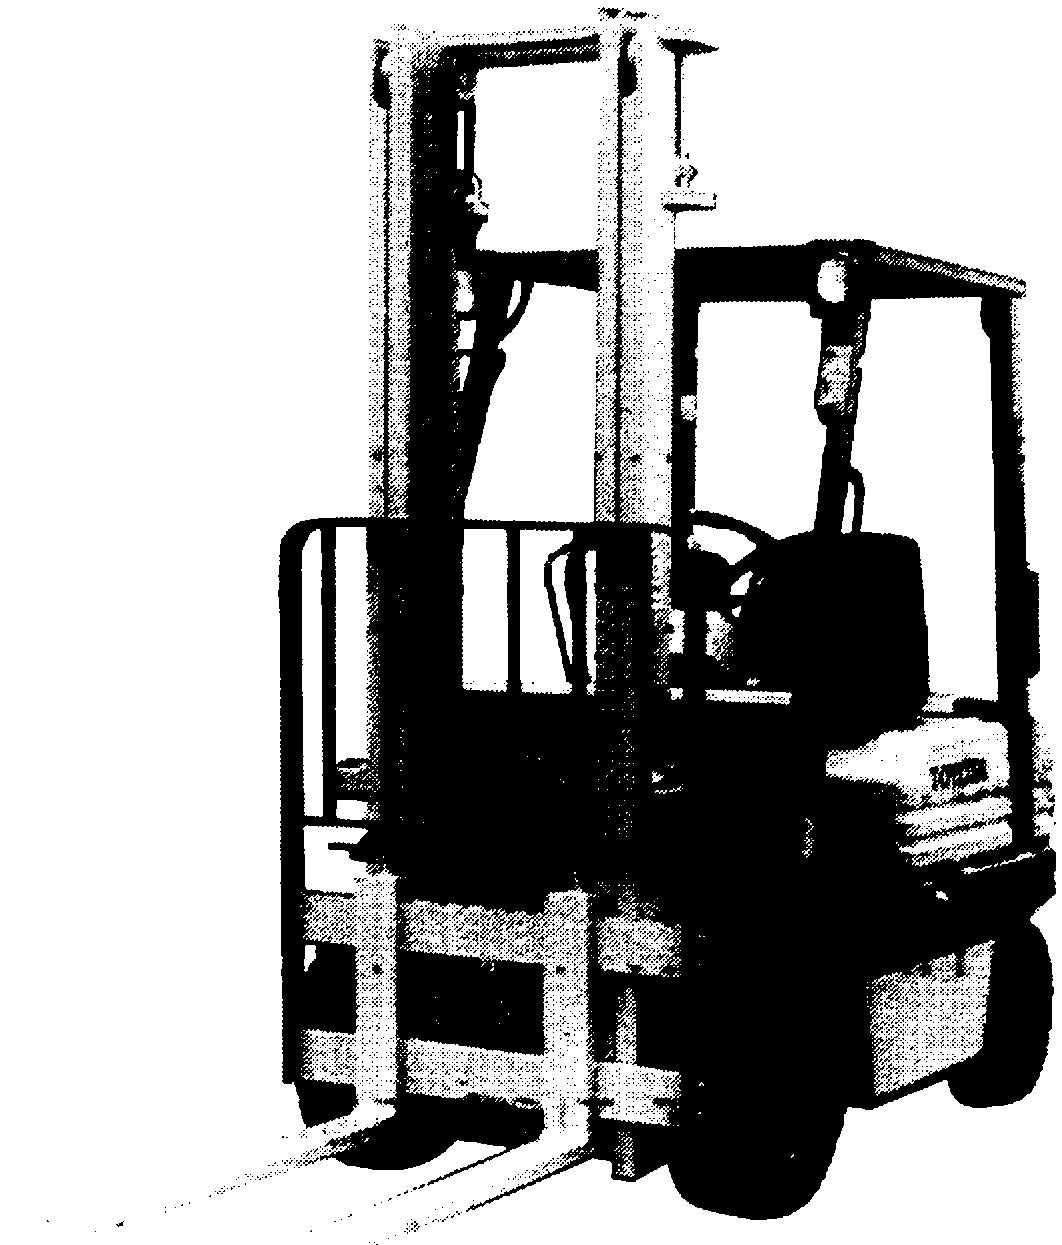 Toyota Forklift 5fg1030 5fd1030 Series Service Repai. Toyota Forklift 5fg1030 5fd1030 Series Service Repair Manual Download. Toyota. Toyota 42 5fg15 Forklift Wiring Diagram At Scoala.co